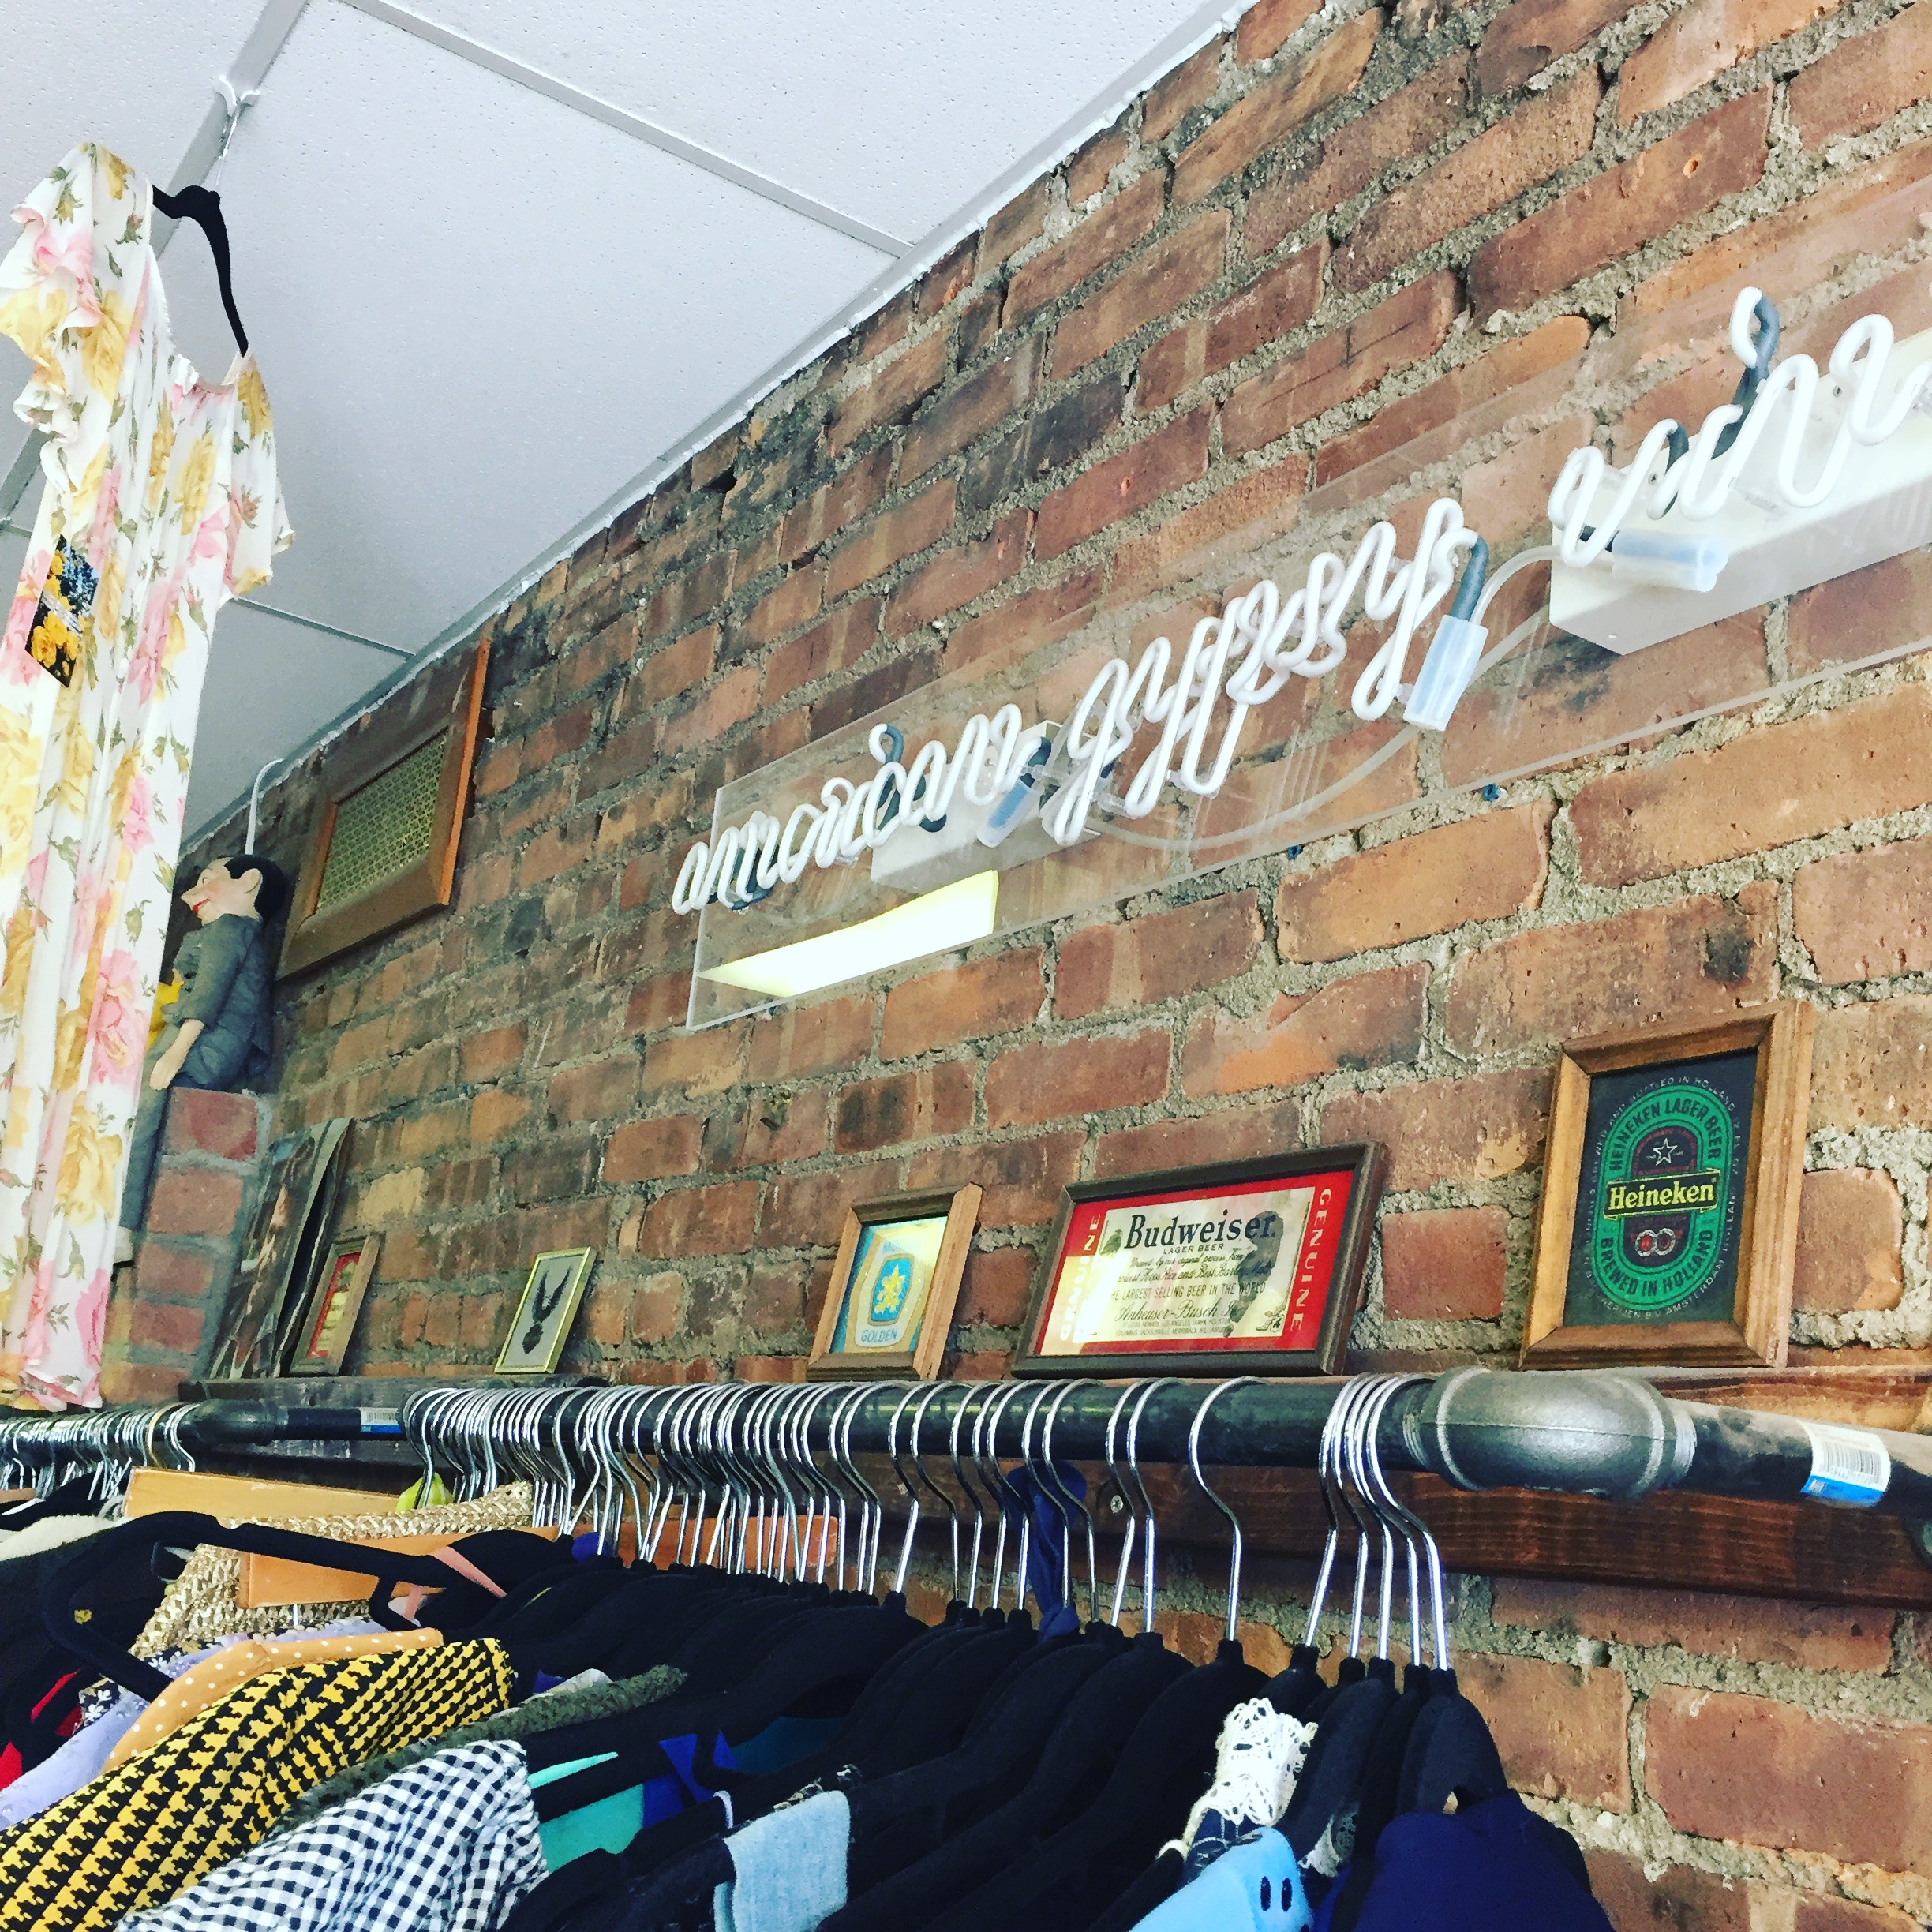 We Shopped at American Gypsy Vintage on the way down to the Cupcake Festival, while waiting for a takeout chicken wrap from Ziatun.  Photo Credit: Katie Hellmuth Martin